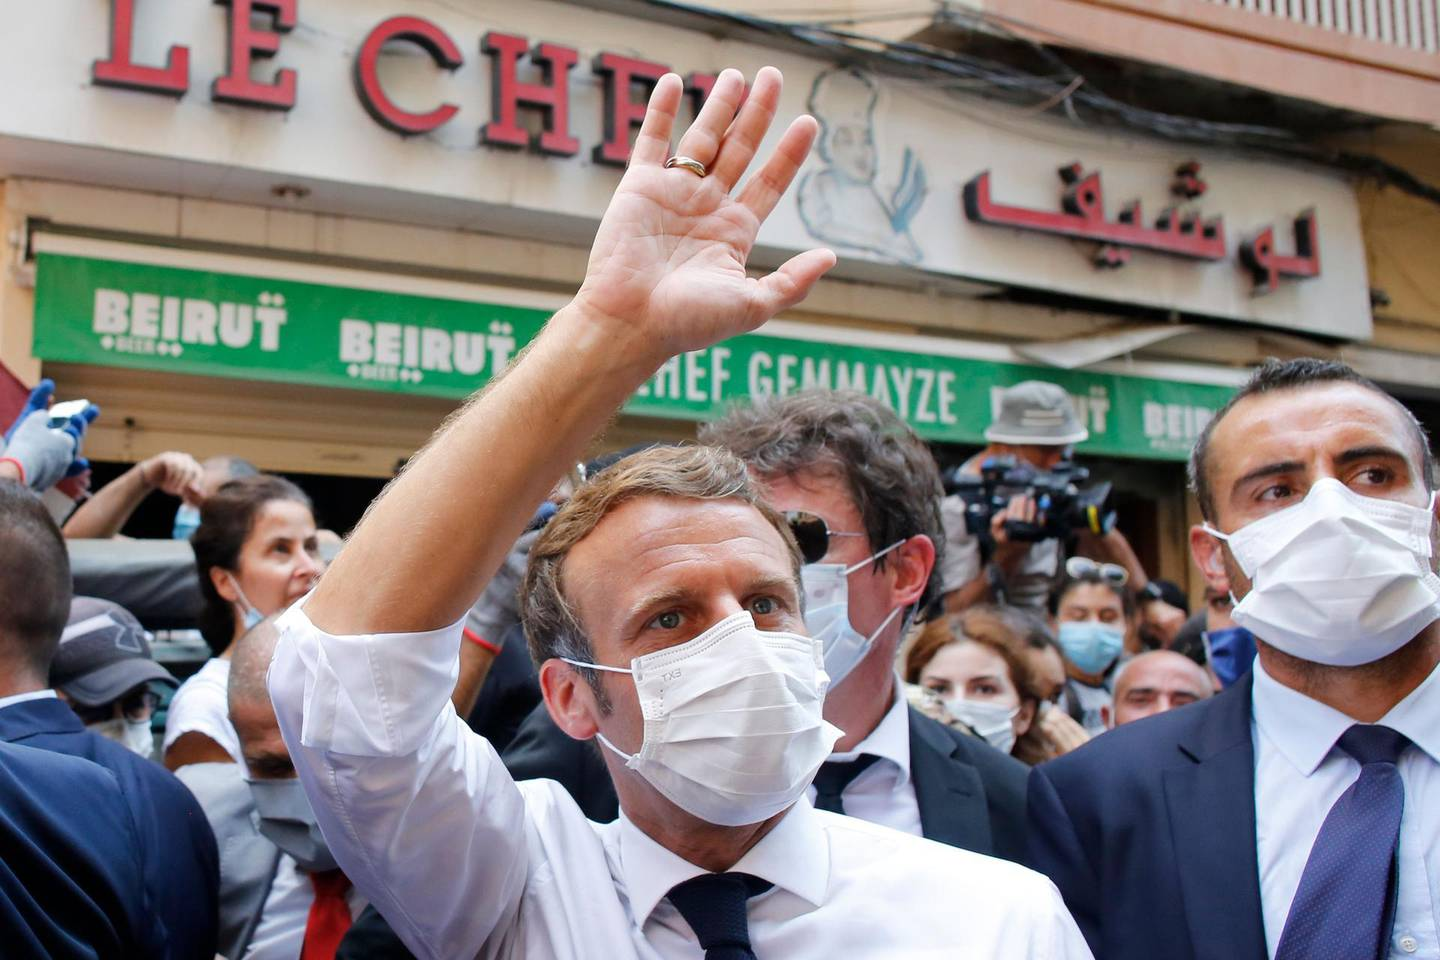 (FILES) In this file photo taken on August 06, 2020, French President Emmanuel Macron (C) waves in front of Beirut's landmark traditional restaurant Le Chef during his tour of the Lebanese capital's heavily-damaged Gemmayzeh neighbourhood on August 6, 2020, two days after a the massive port explosion which devastated the city in a disaster that has sparked grief and fury across the world.  Hollywood star Russell Crowe said on August 13, 2020 that he donated funds to help rebuild a blast-hit Beirut restaurant on behalf of late food icon Anthony Bourdain, who loved its traditional dishes. The decades-old Le Chef restaurant, located in the heart of a trendy Beirut district, is a beloved neighbourhood place renowned for its home-style cooking.  / AFP / POOL / Thibault Camus